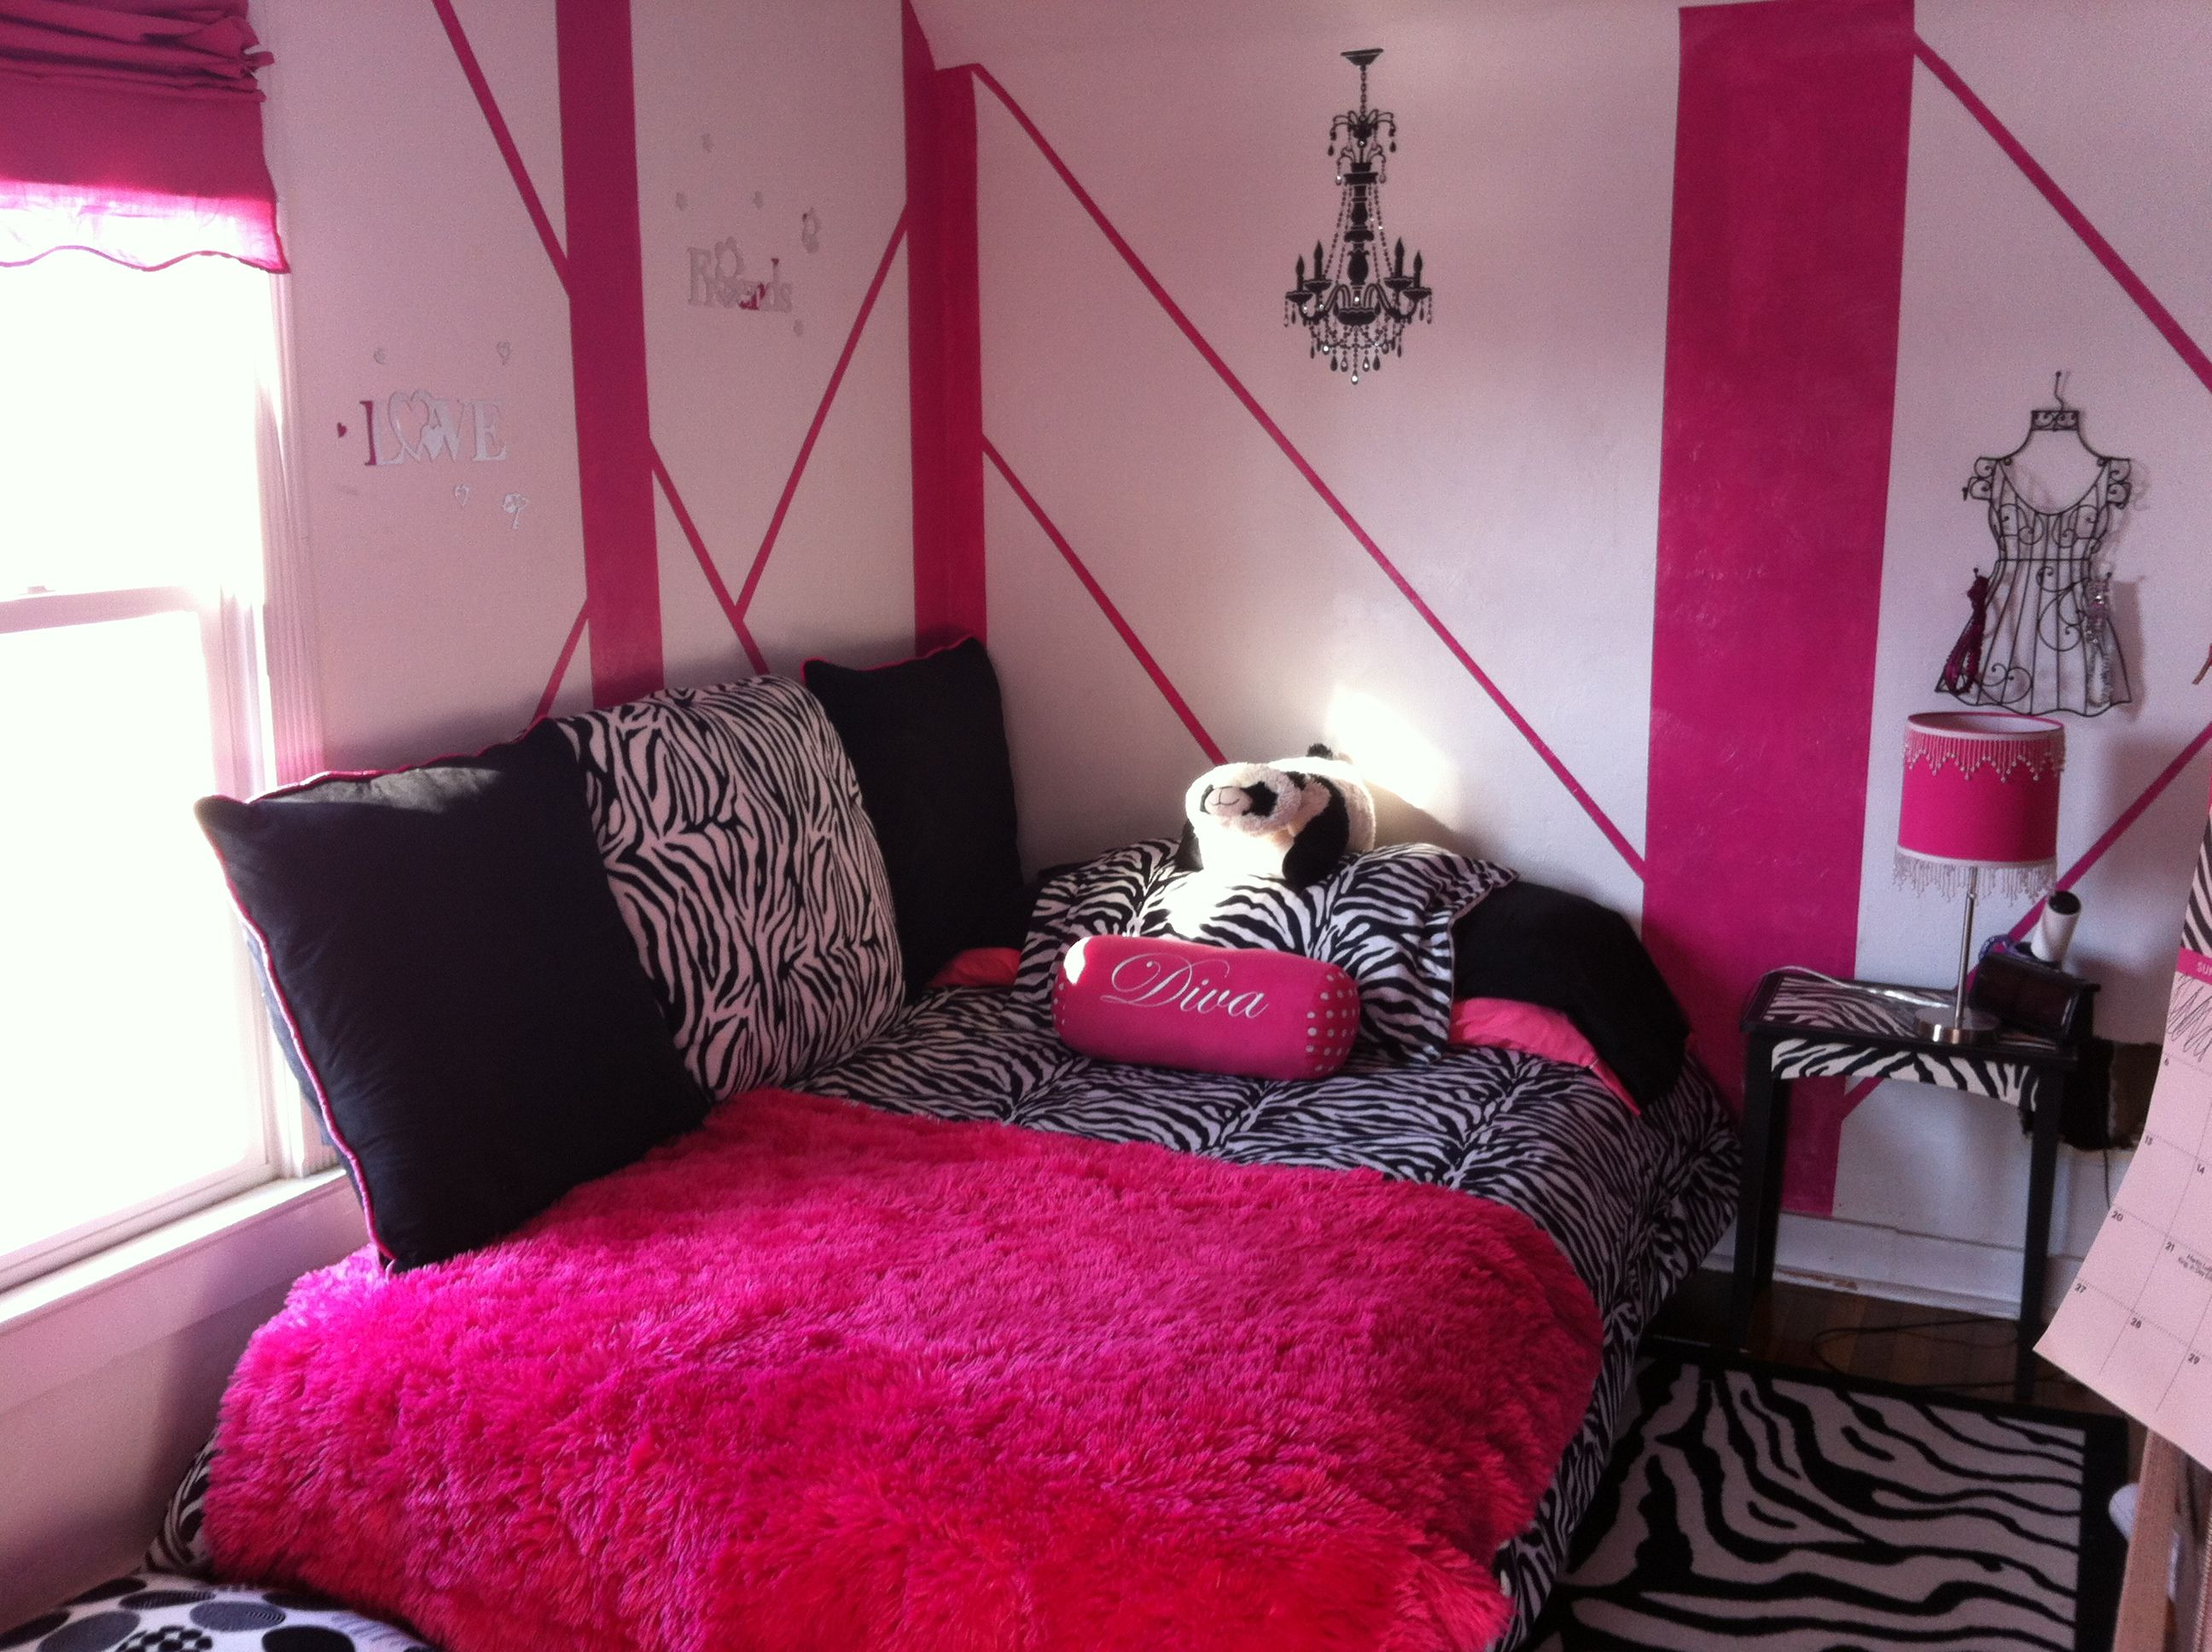 daphne's room is almost done! van halen-inspired (or so my husband